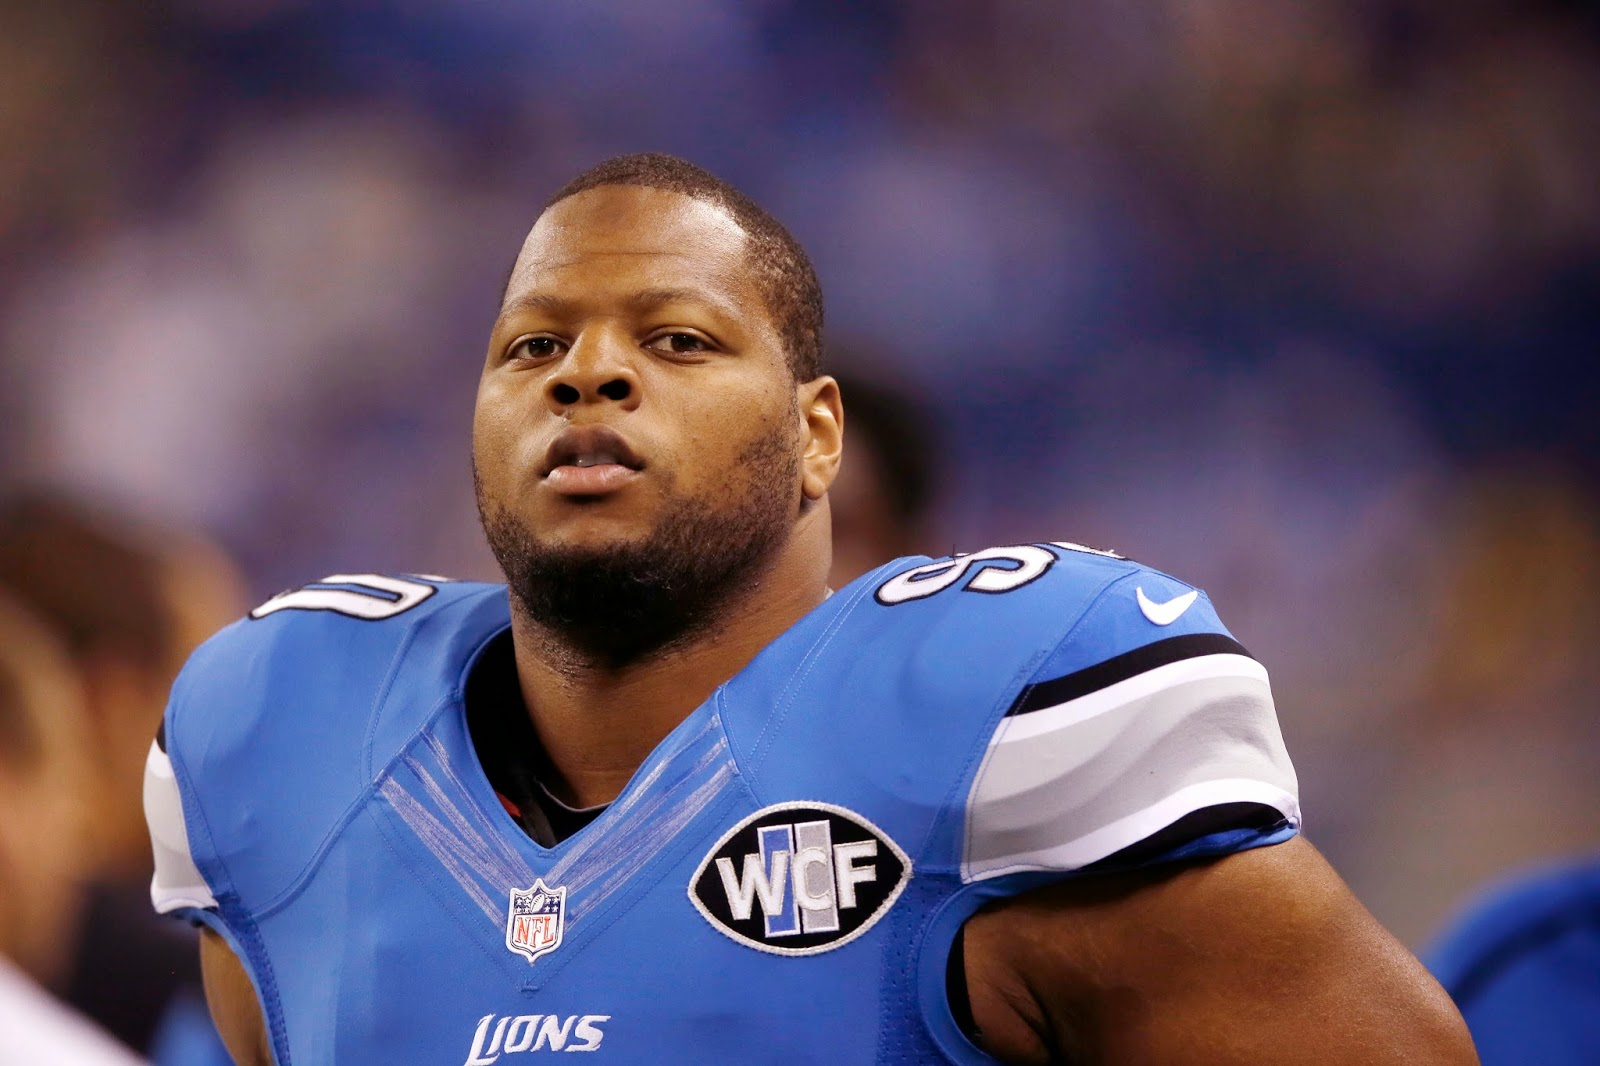 Detroit Lions Ndamukong Suh won't address report he wants to play in New York